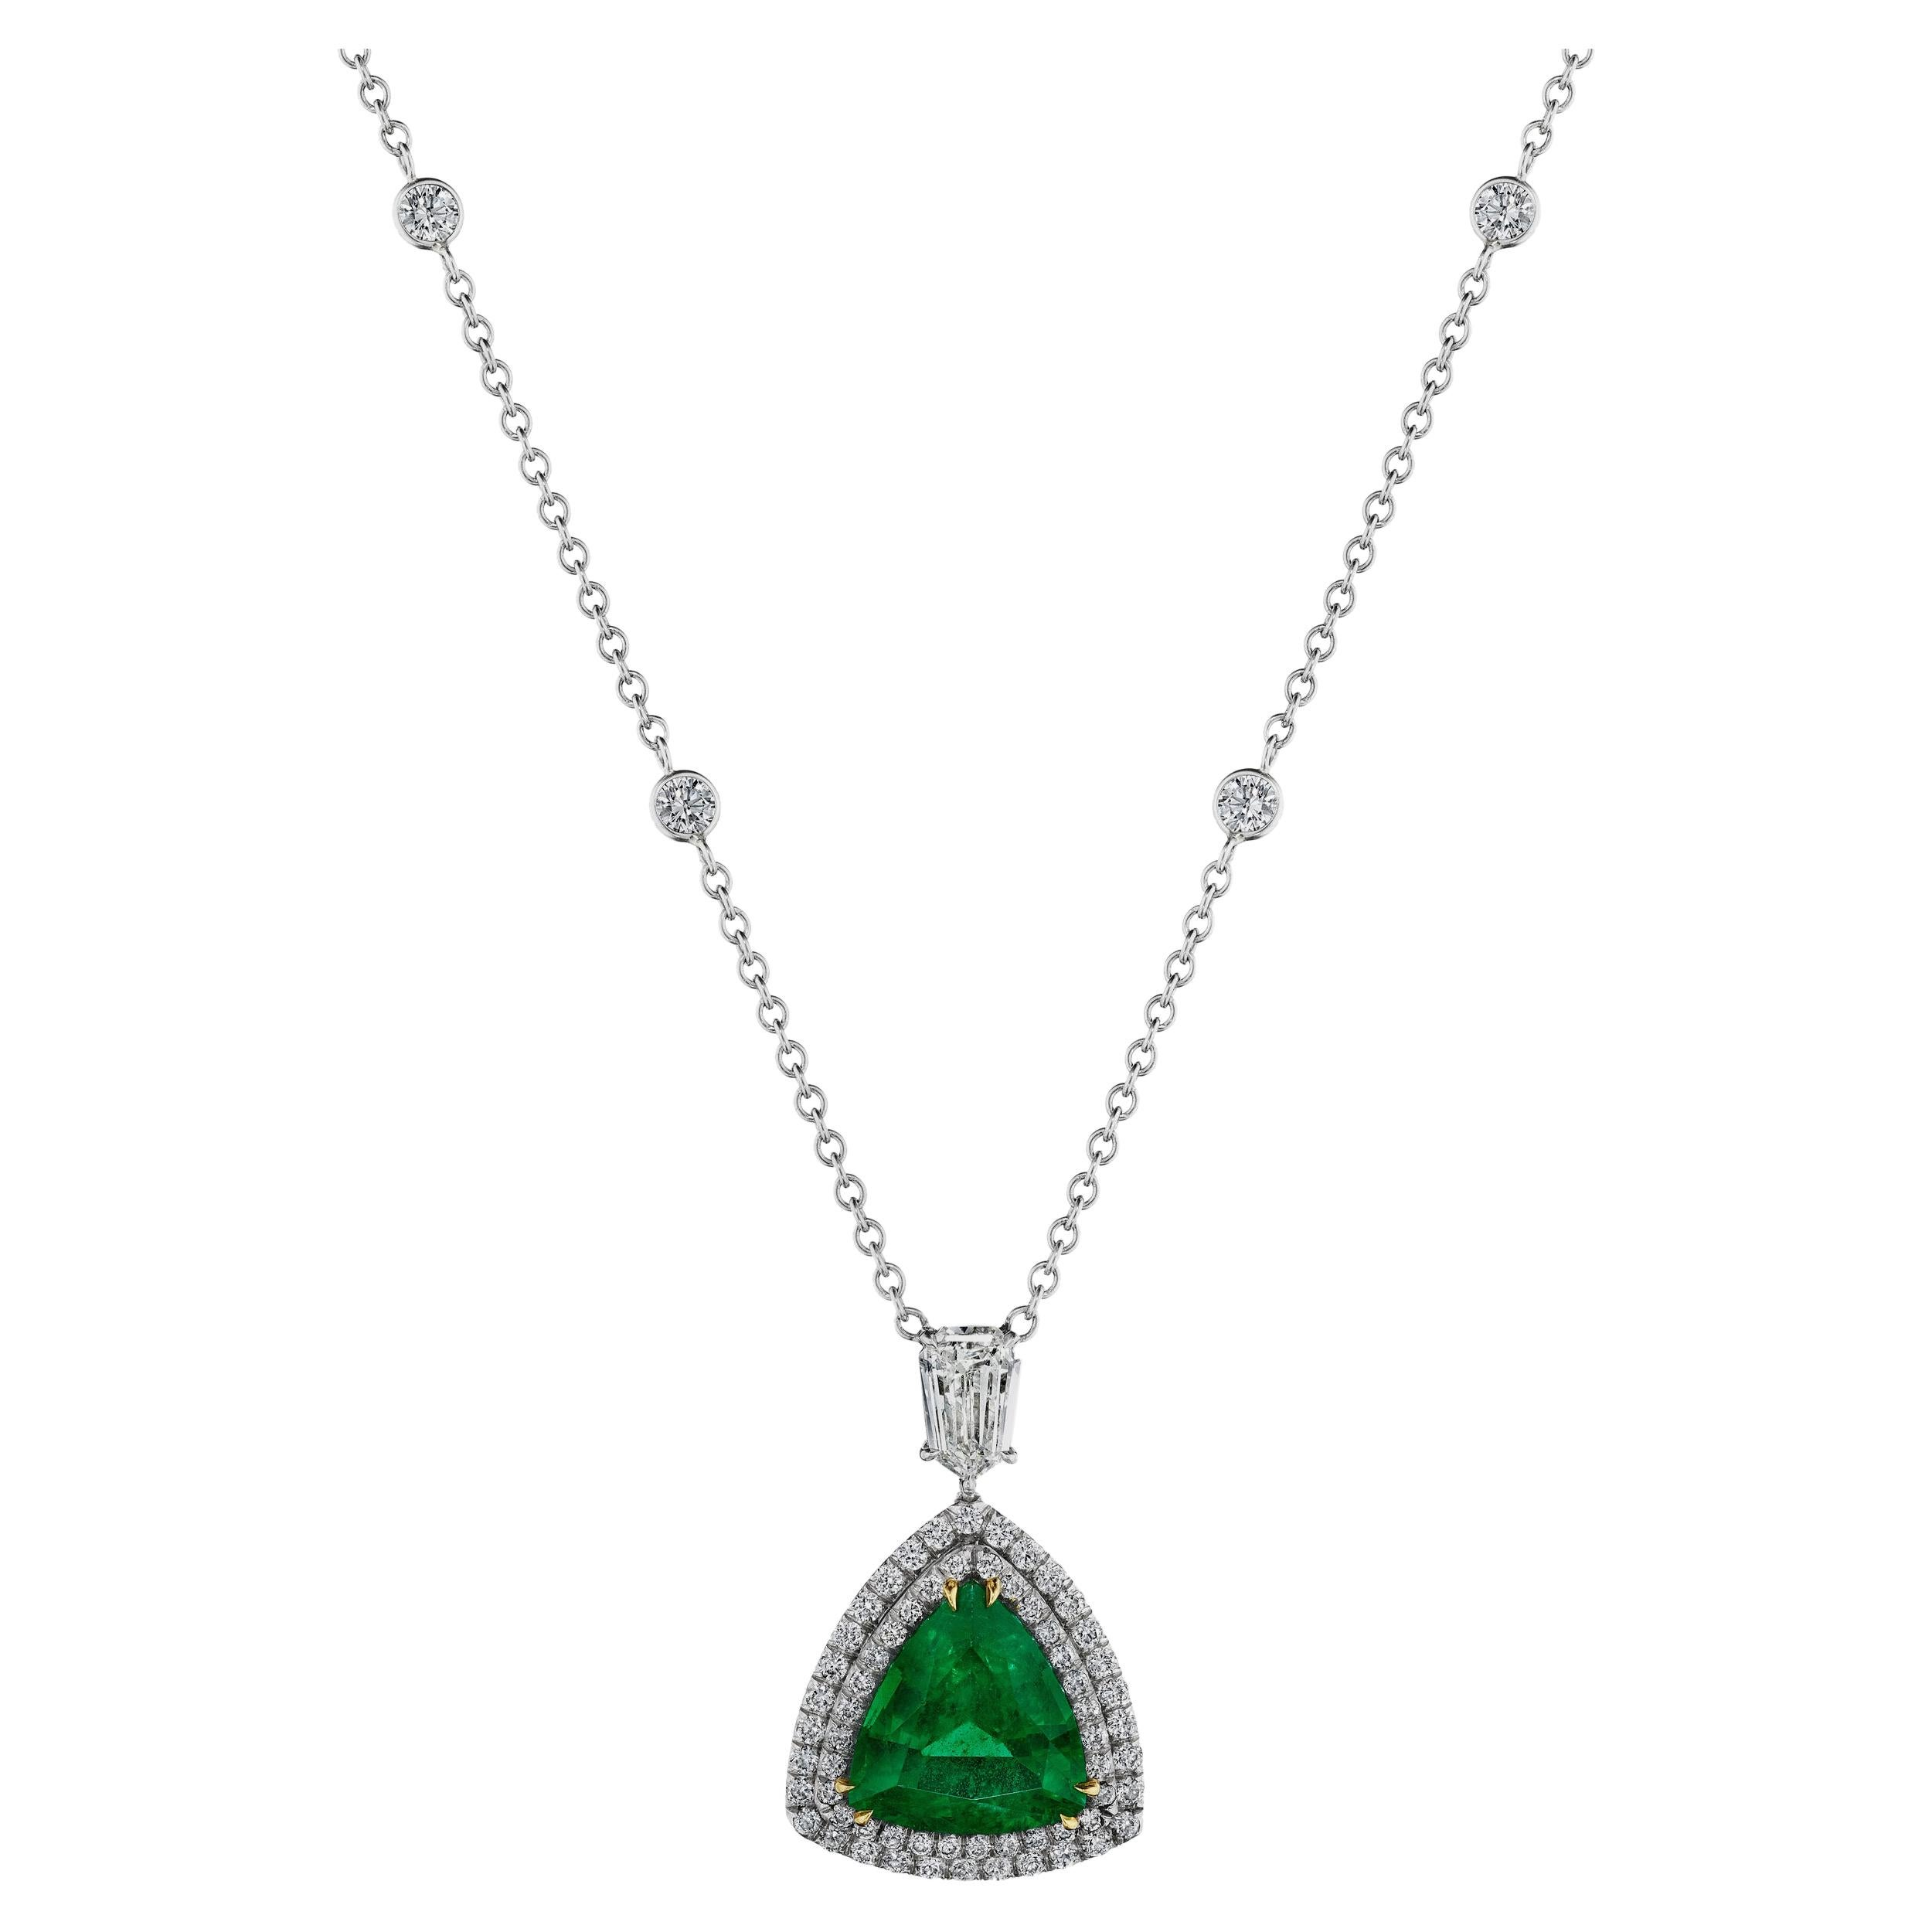 4.75 Carat Trillion Cut Emerald and Diamond Double Halo Pendant Necklace